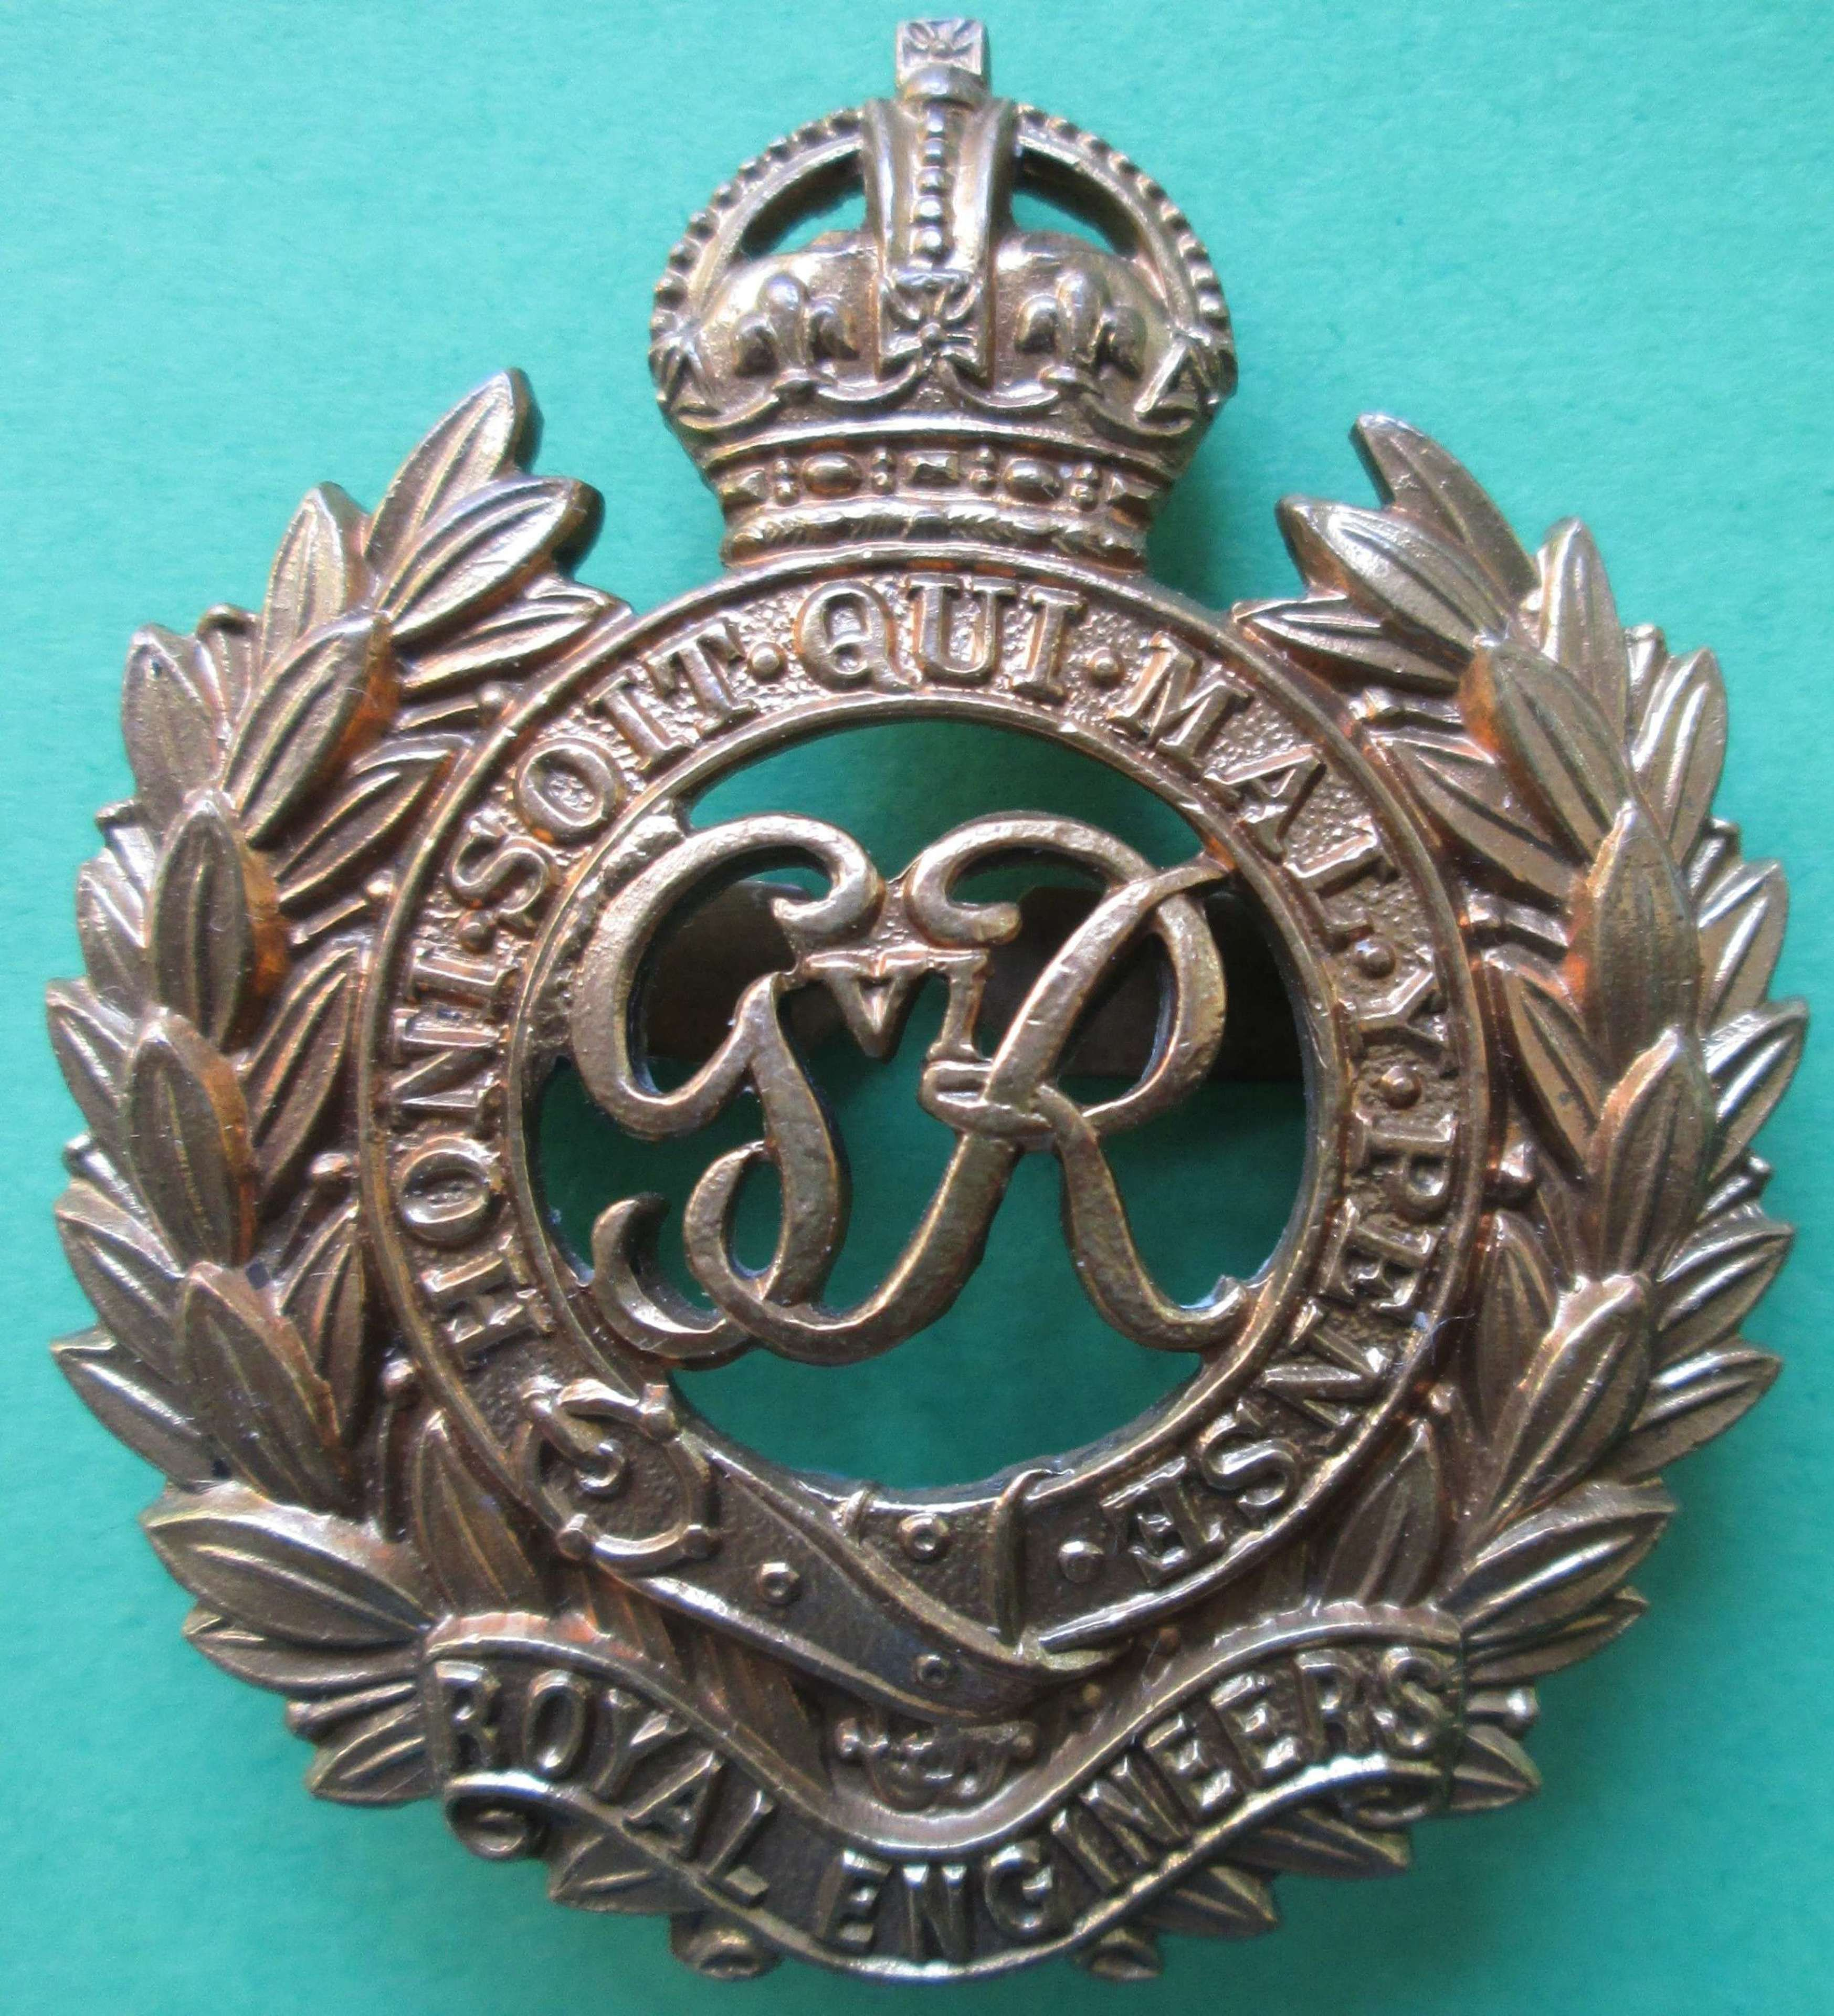 A GOOD WWII PERIOD OFFICER ROYAL ENGINEERS CAP BADGE